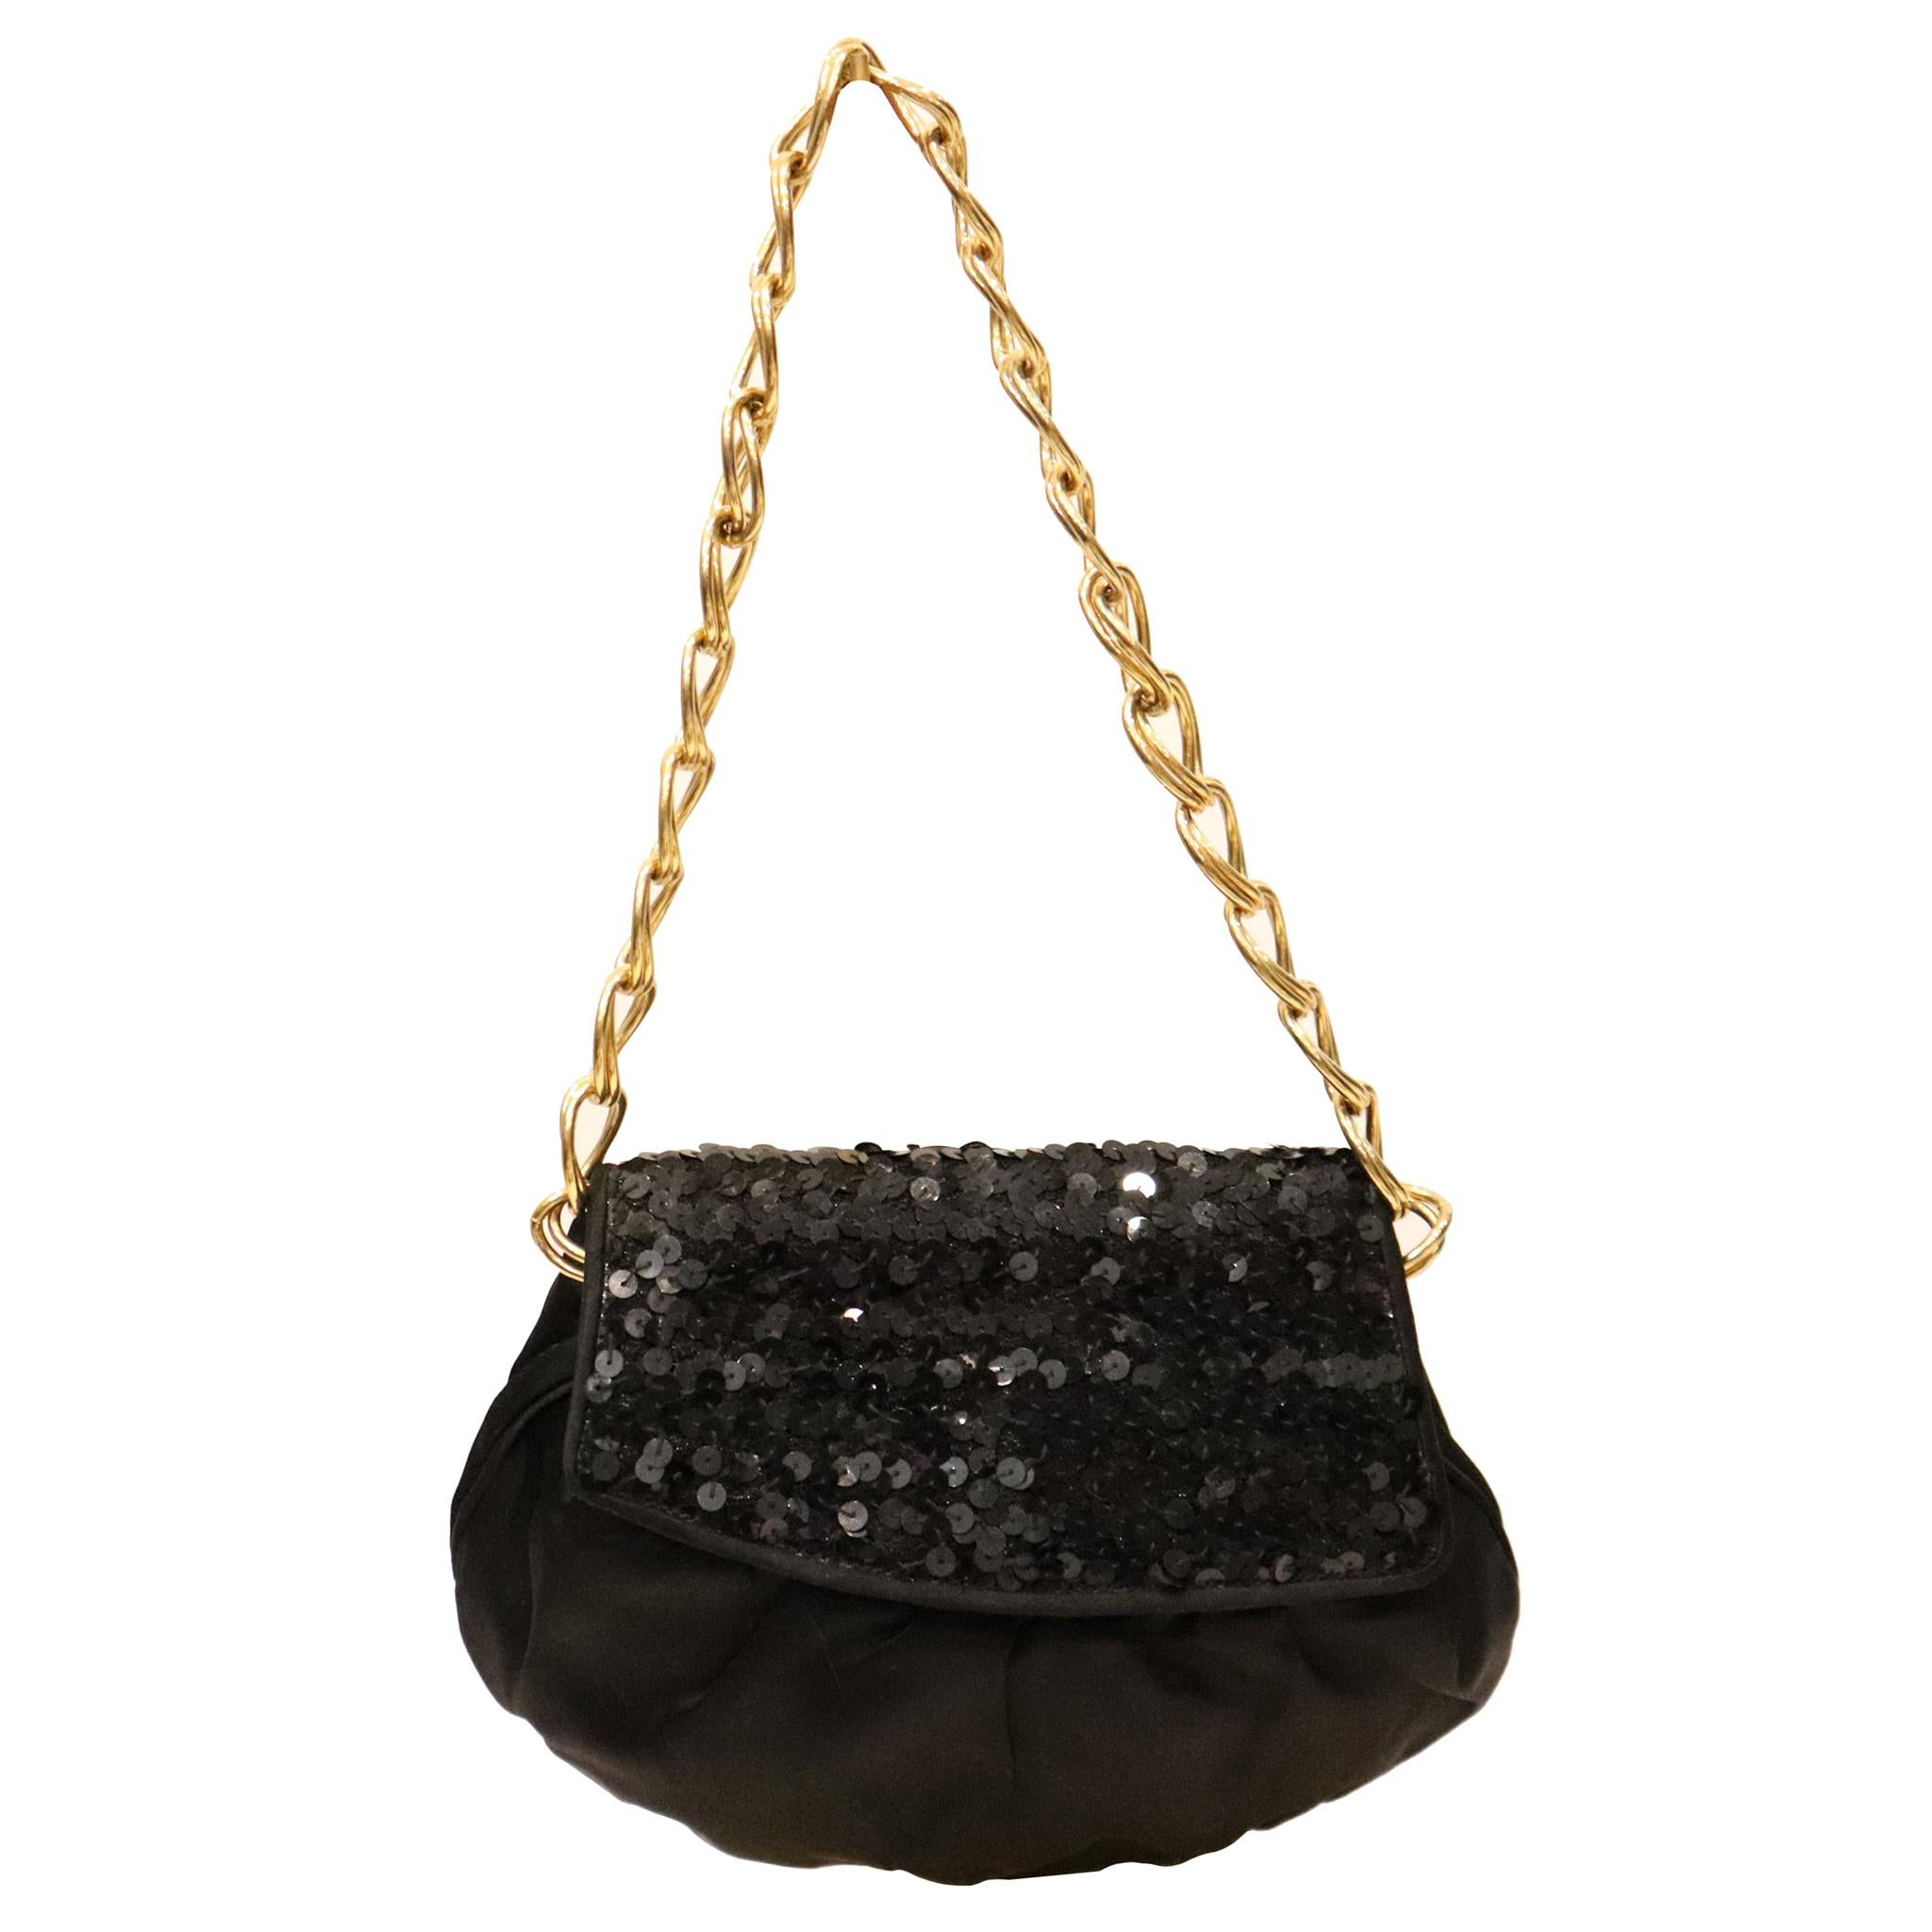 Fendi Black Satin and Sequin Clutch Bag